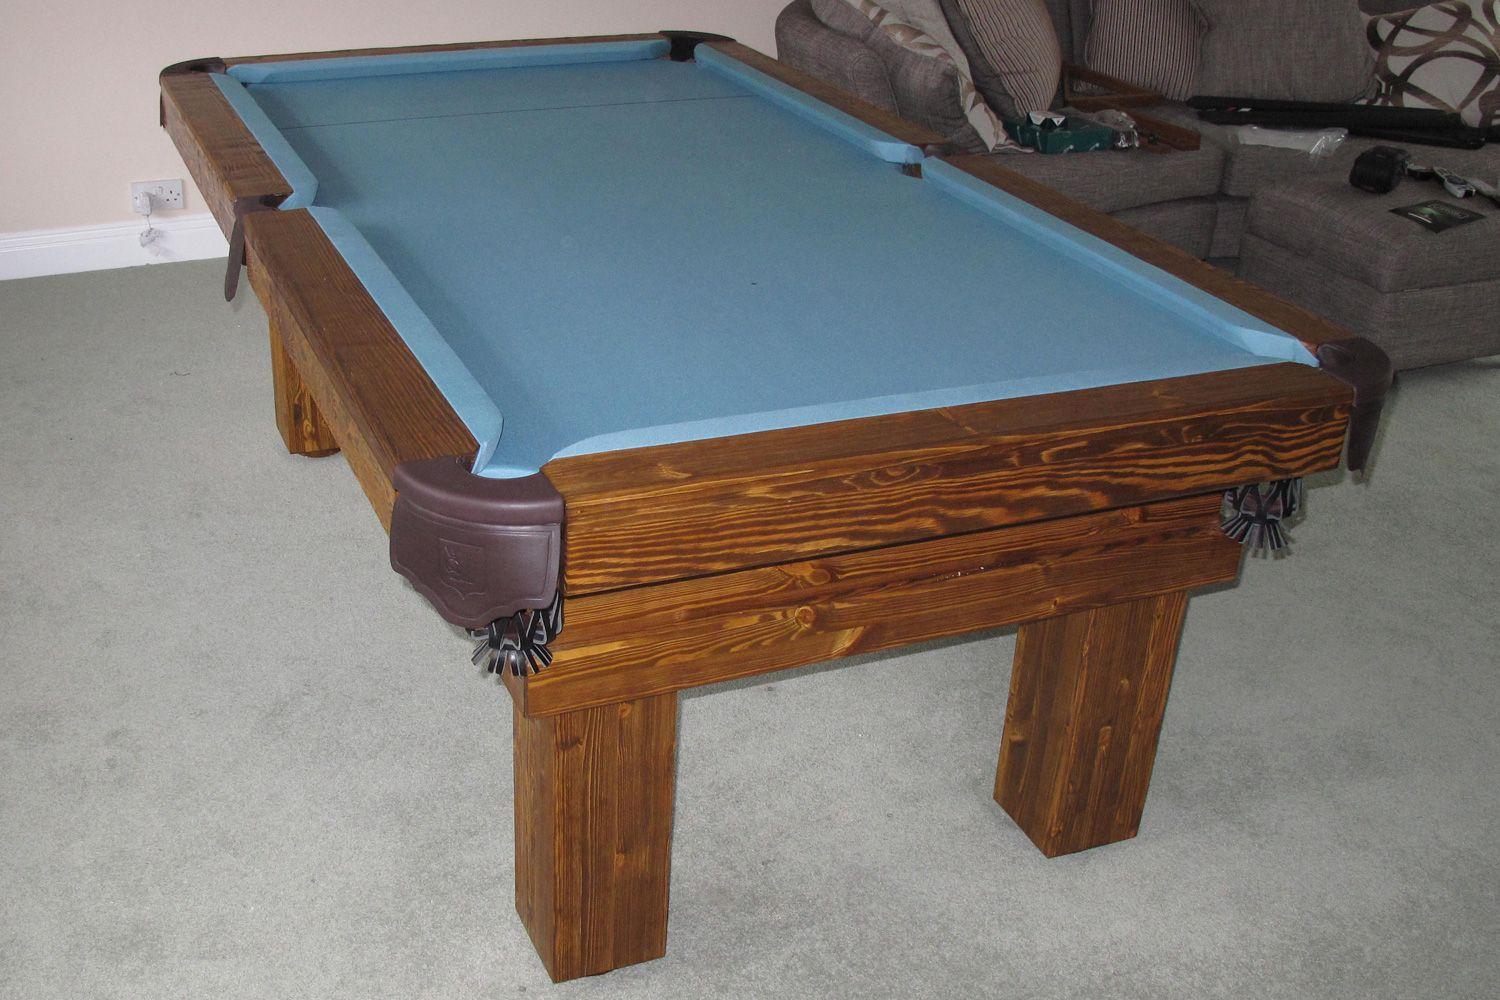 Rustic Pool Table In Softwood #6 And A Powder Blue Cloth. Www.luxury